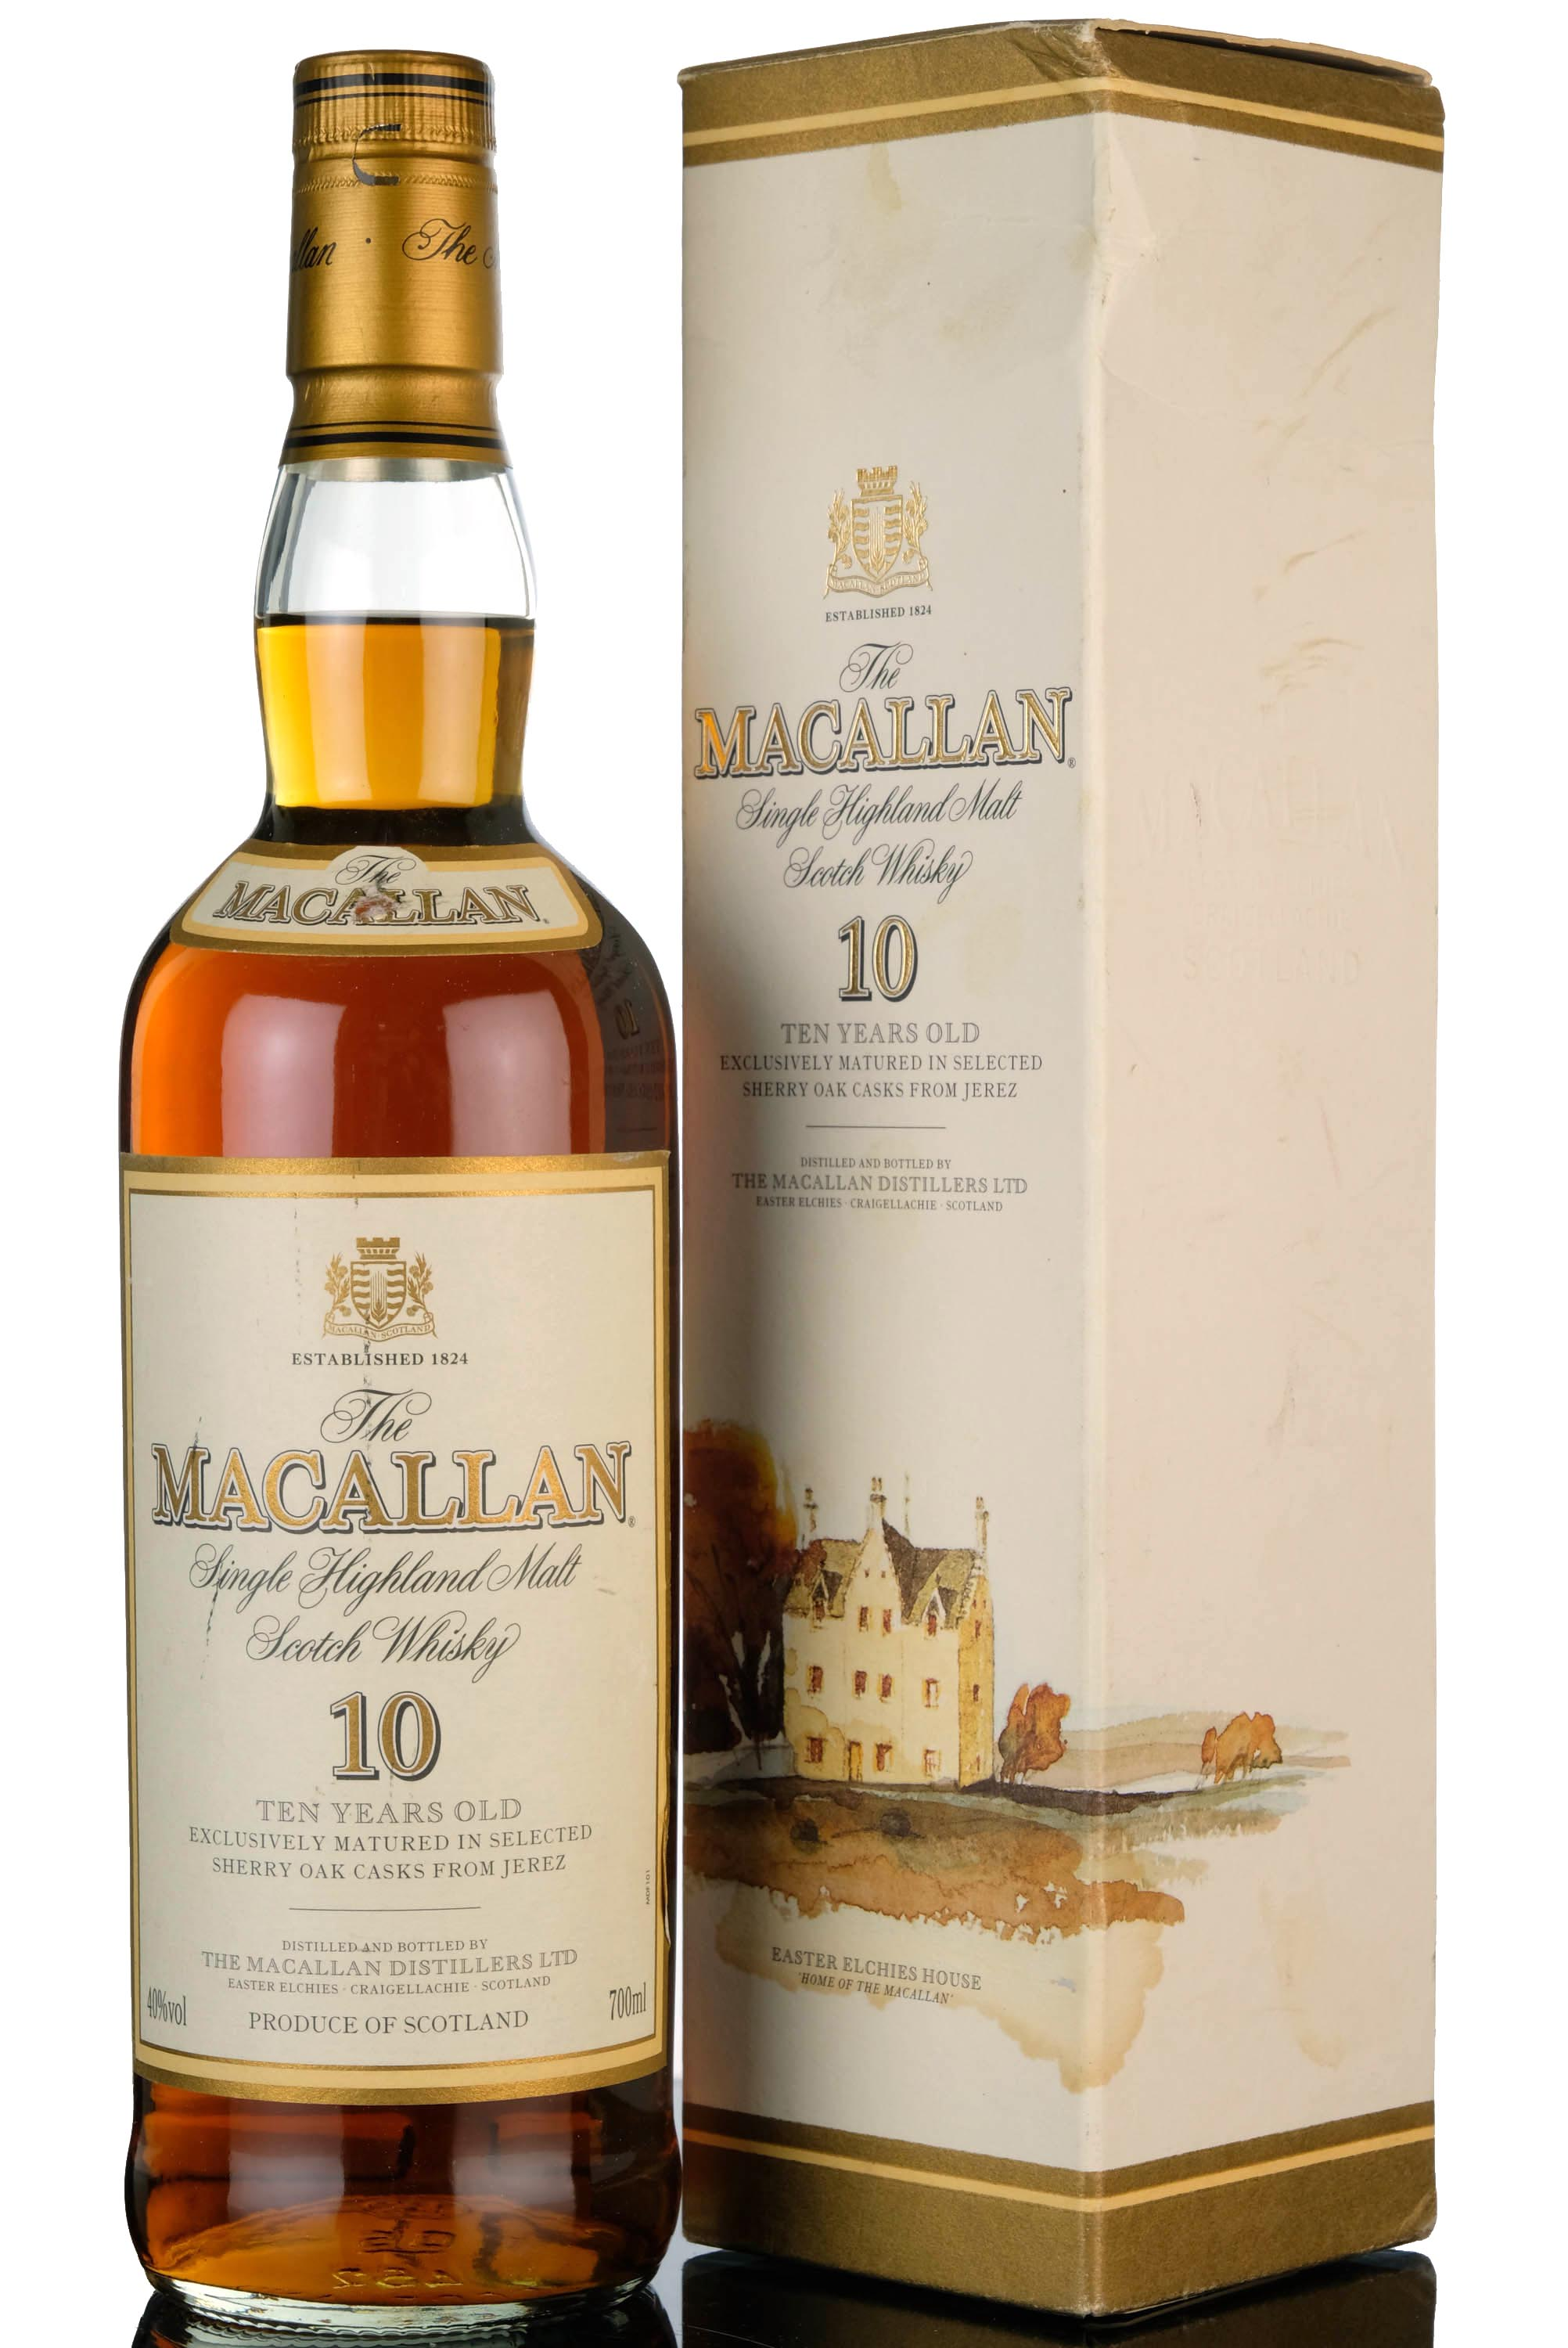 macallan 10 year old - sherry casks - early 2000s